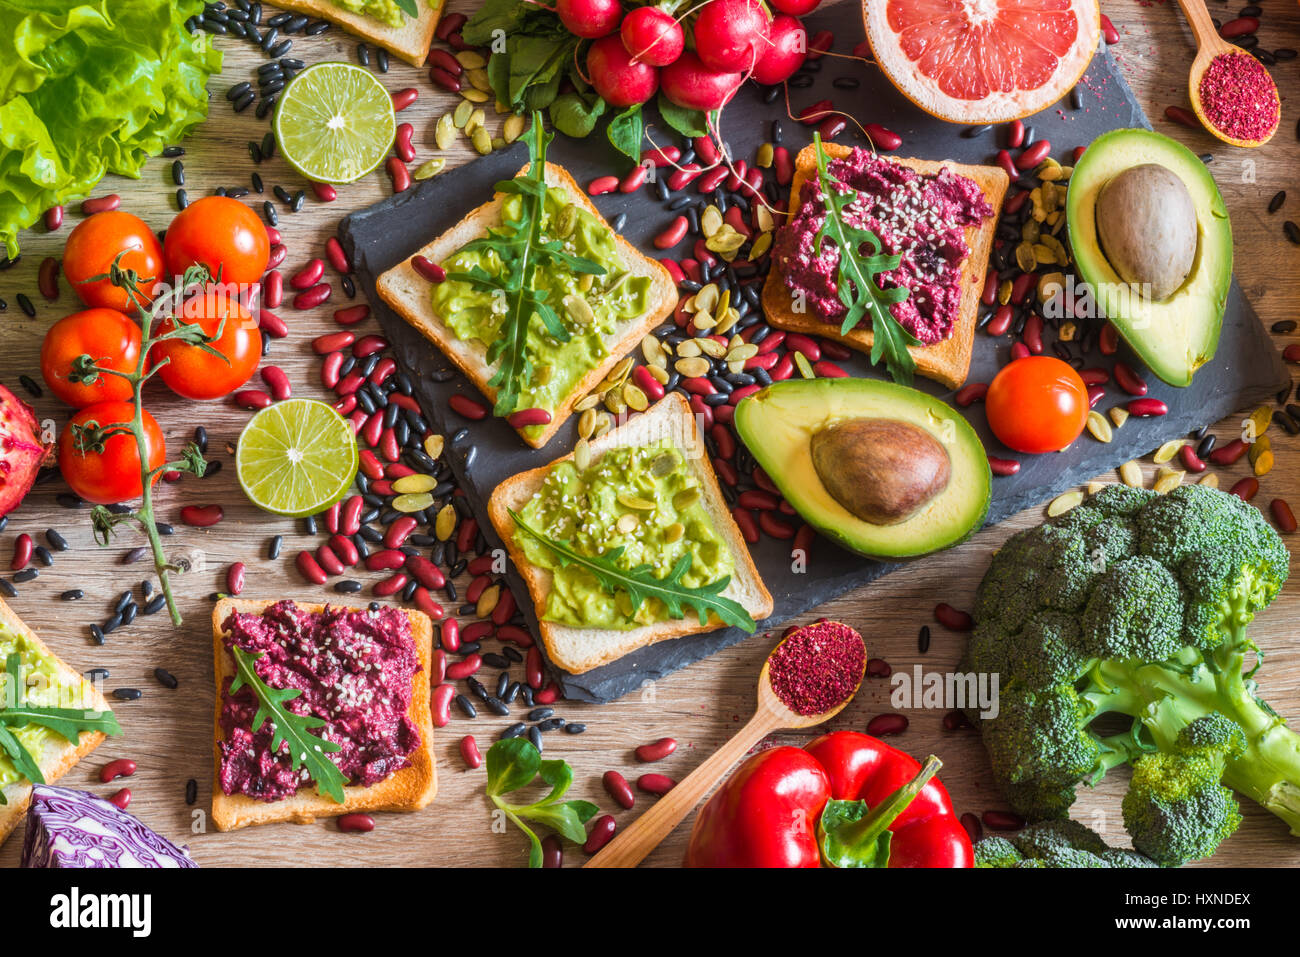 Healthy vegan food. Sandwiches and fresh vegetables on wooden background. Detox diet. Different colorful fresh juices. - Stock Image